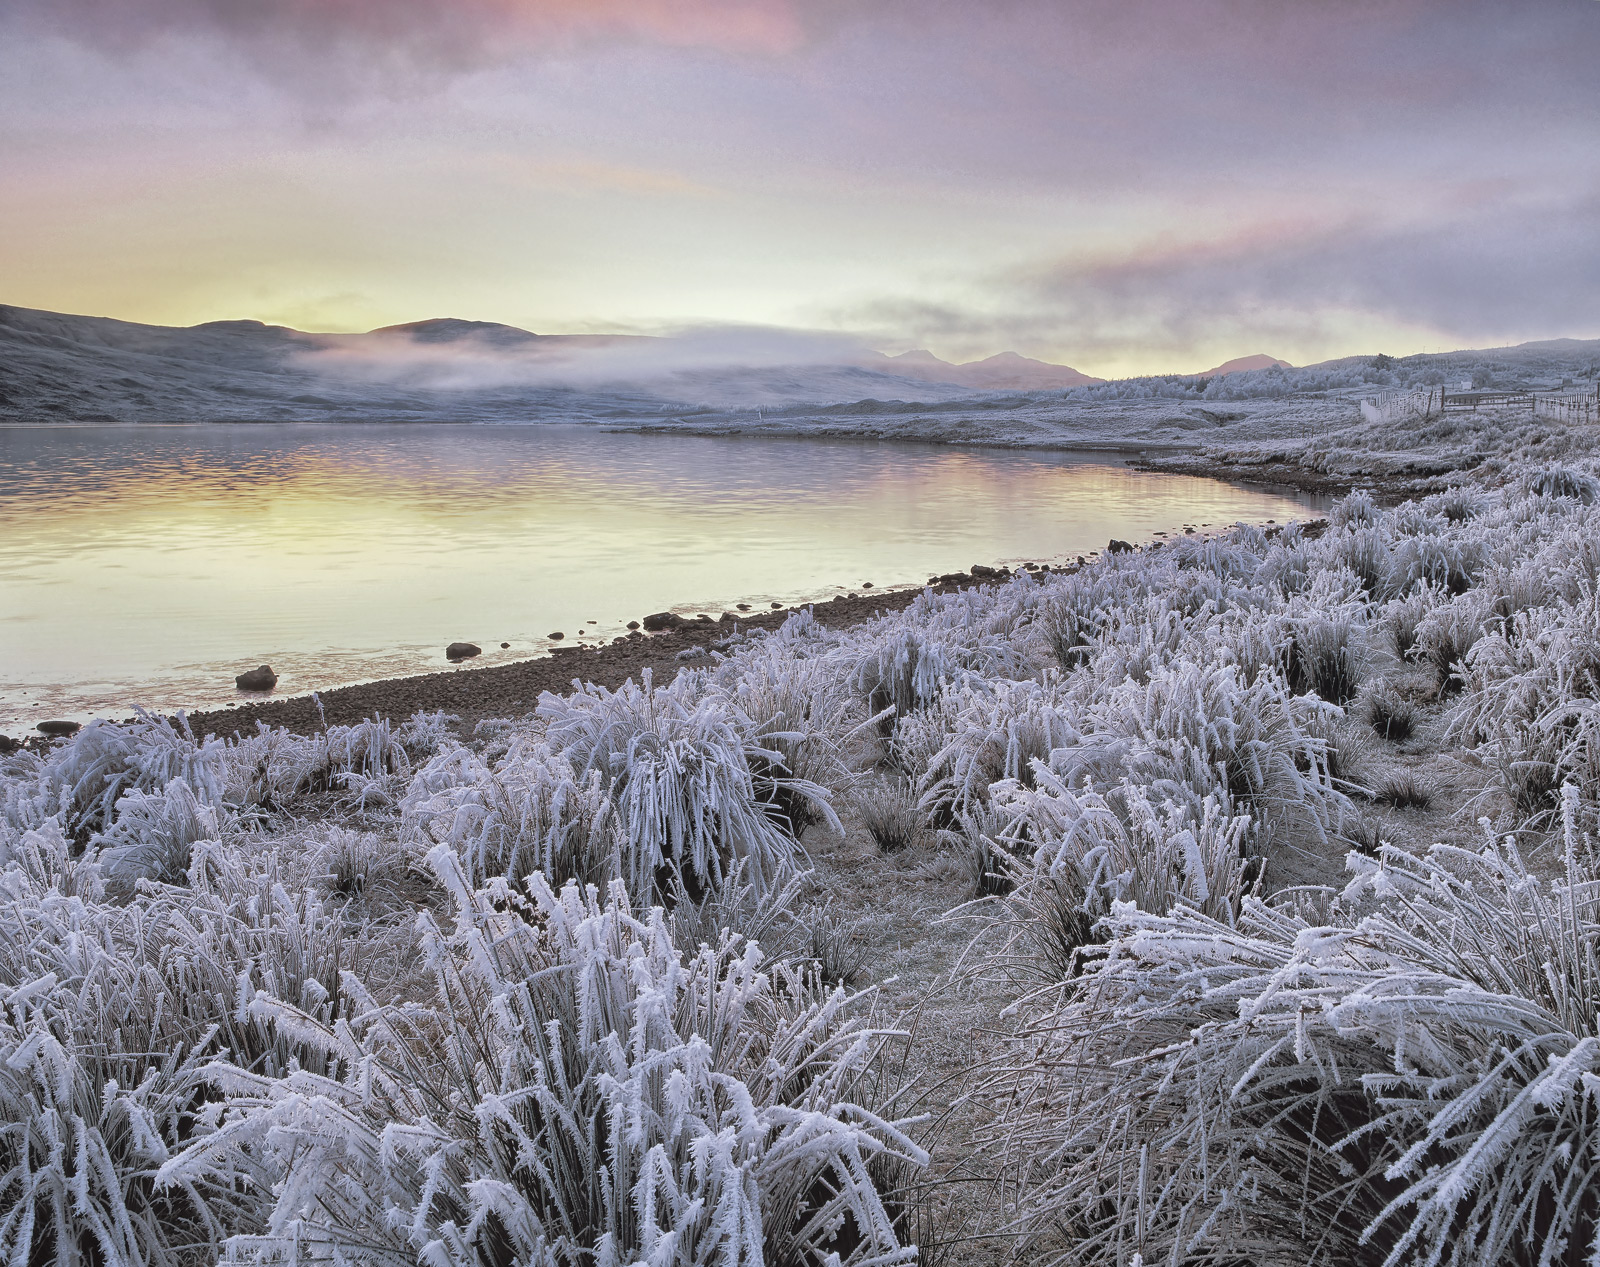 Bone chilling cold greeted me at sunrise and the temperature refused to budge for the entire day. At sunset I migrated...